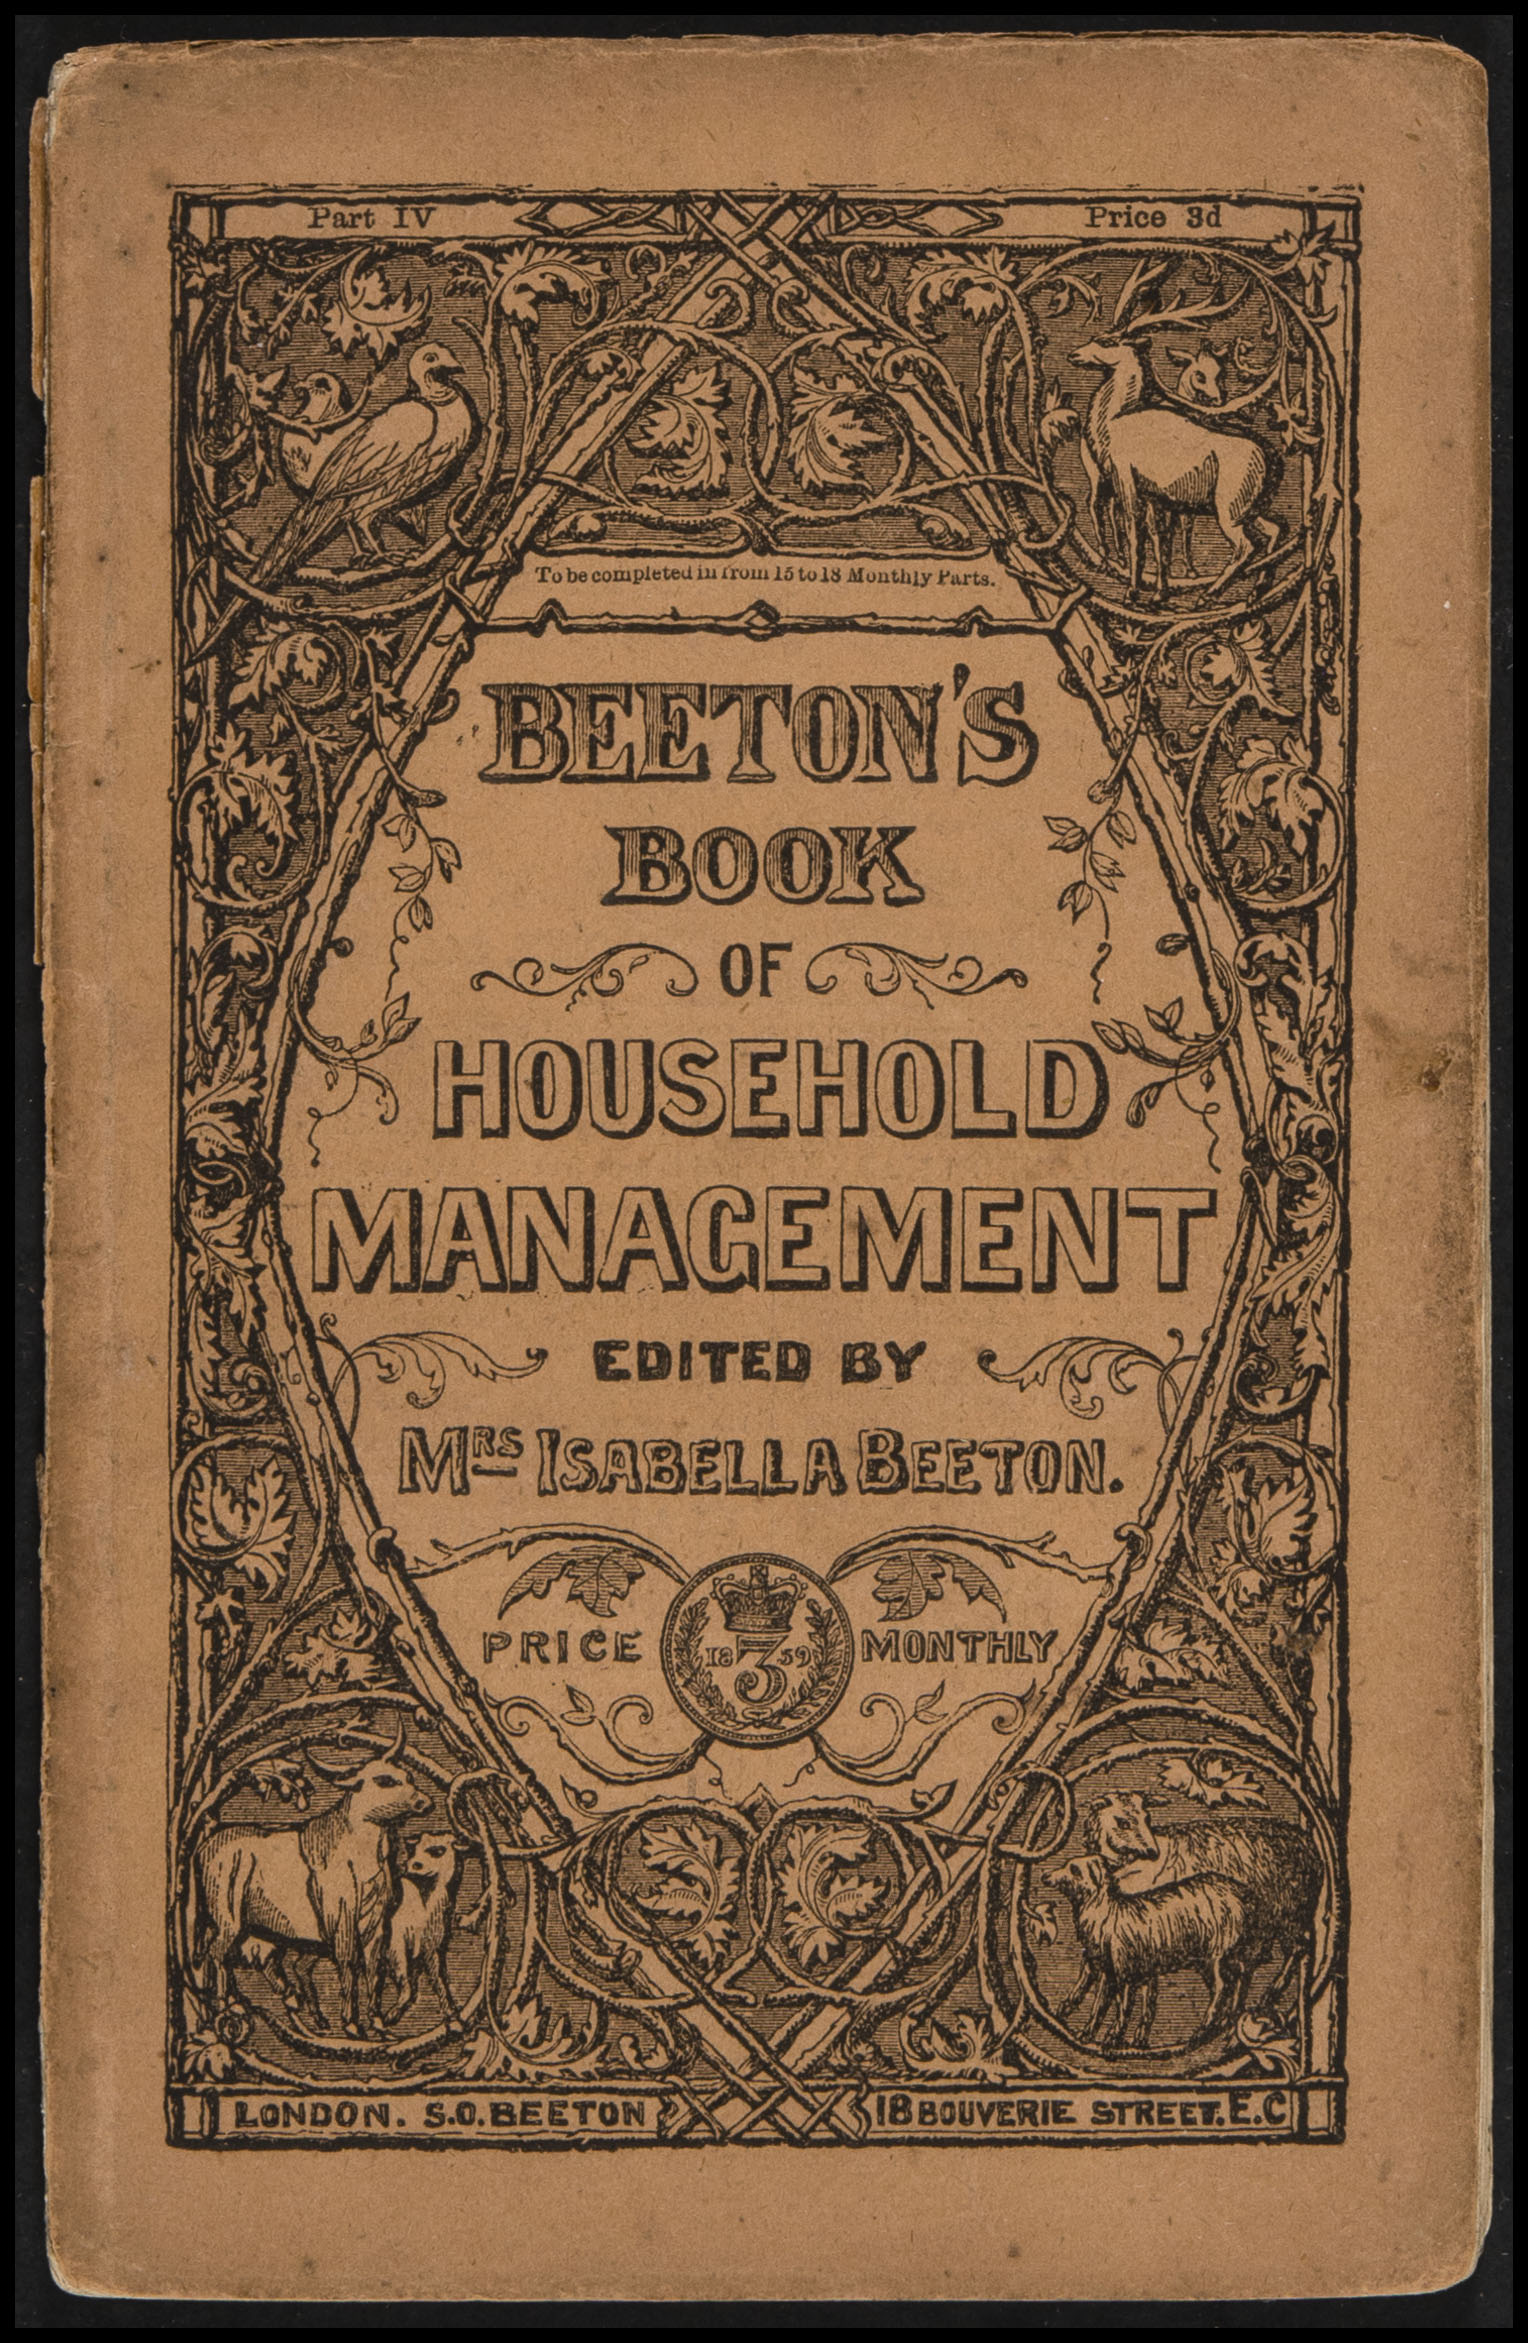 Front cover of Mrs Beeton's Book of Household Management, Part 4 © Material sourced from the University of California, San Diego